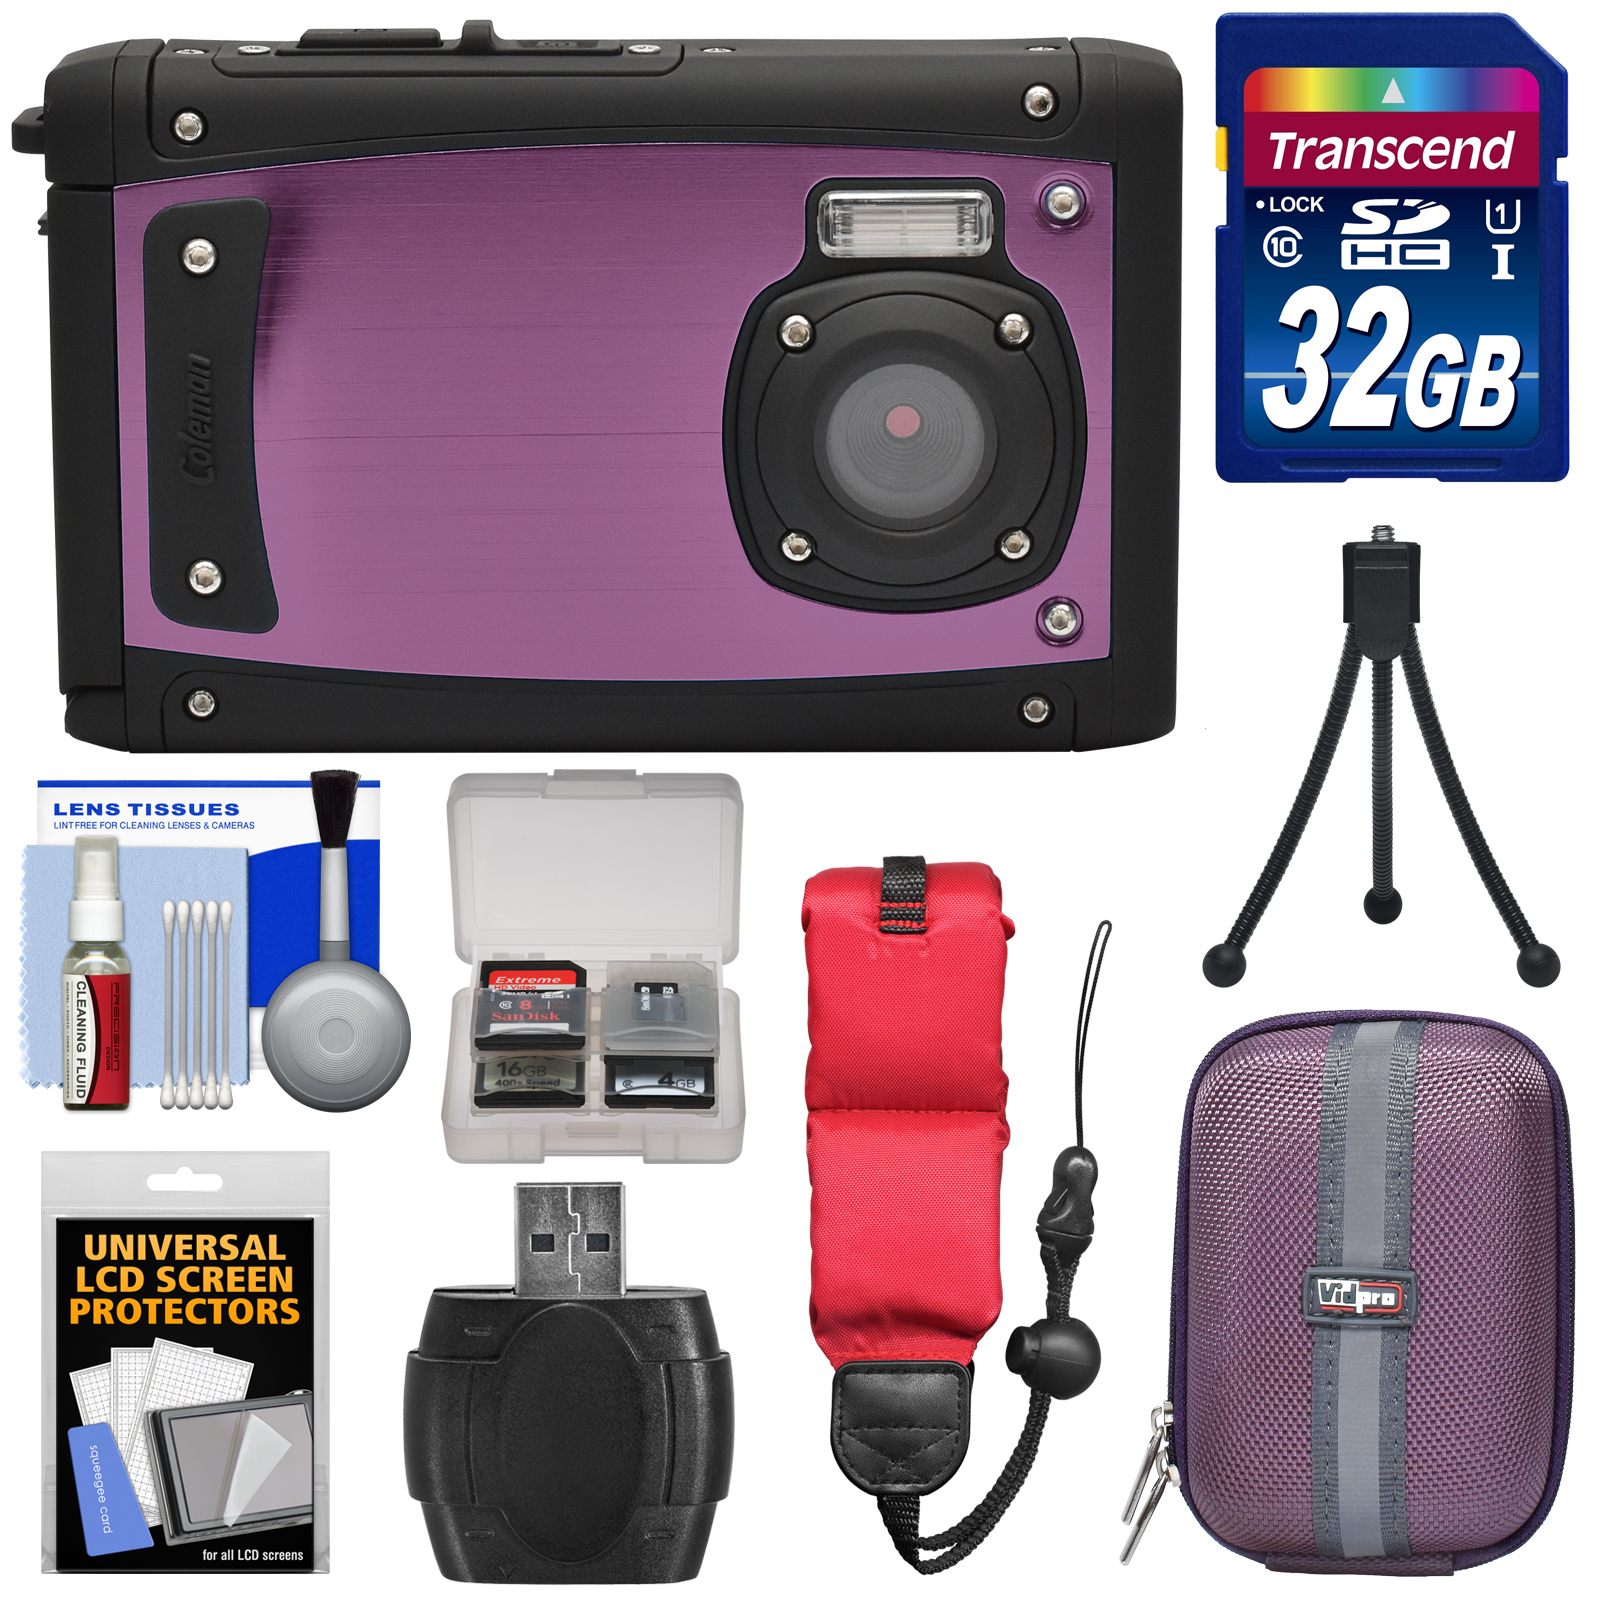 Coleman Venture HD C40WP Shock & Waterproof Digital Camera (Red) with 32GB Card + Case + Float Strap + Tripod + Kit